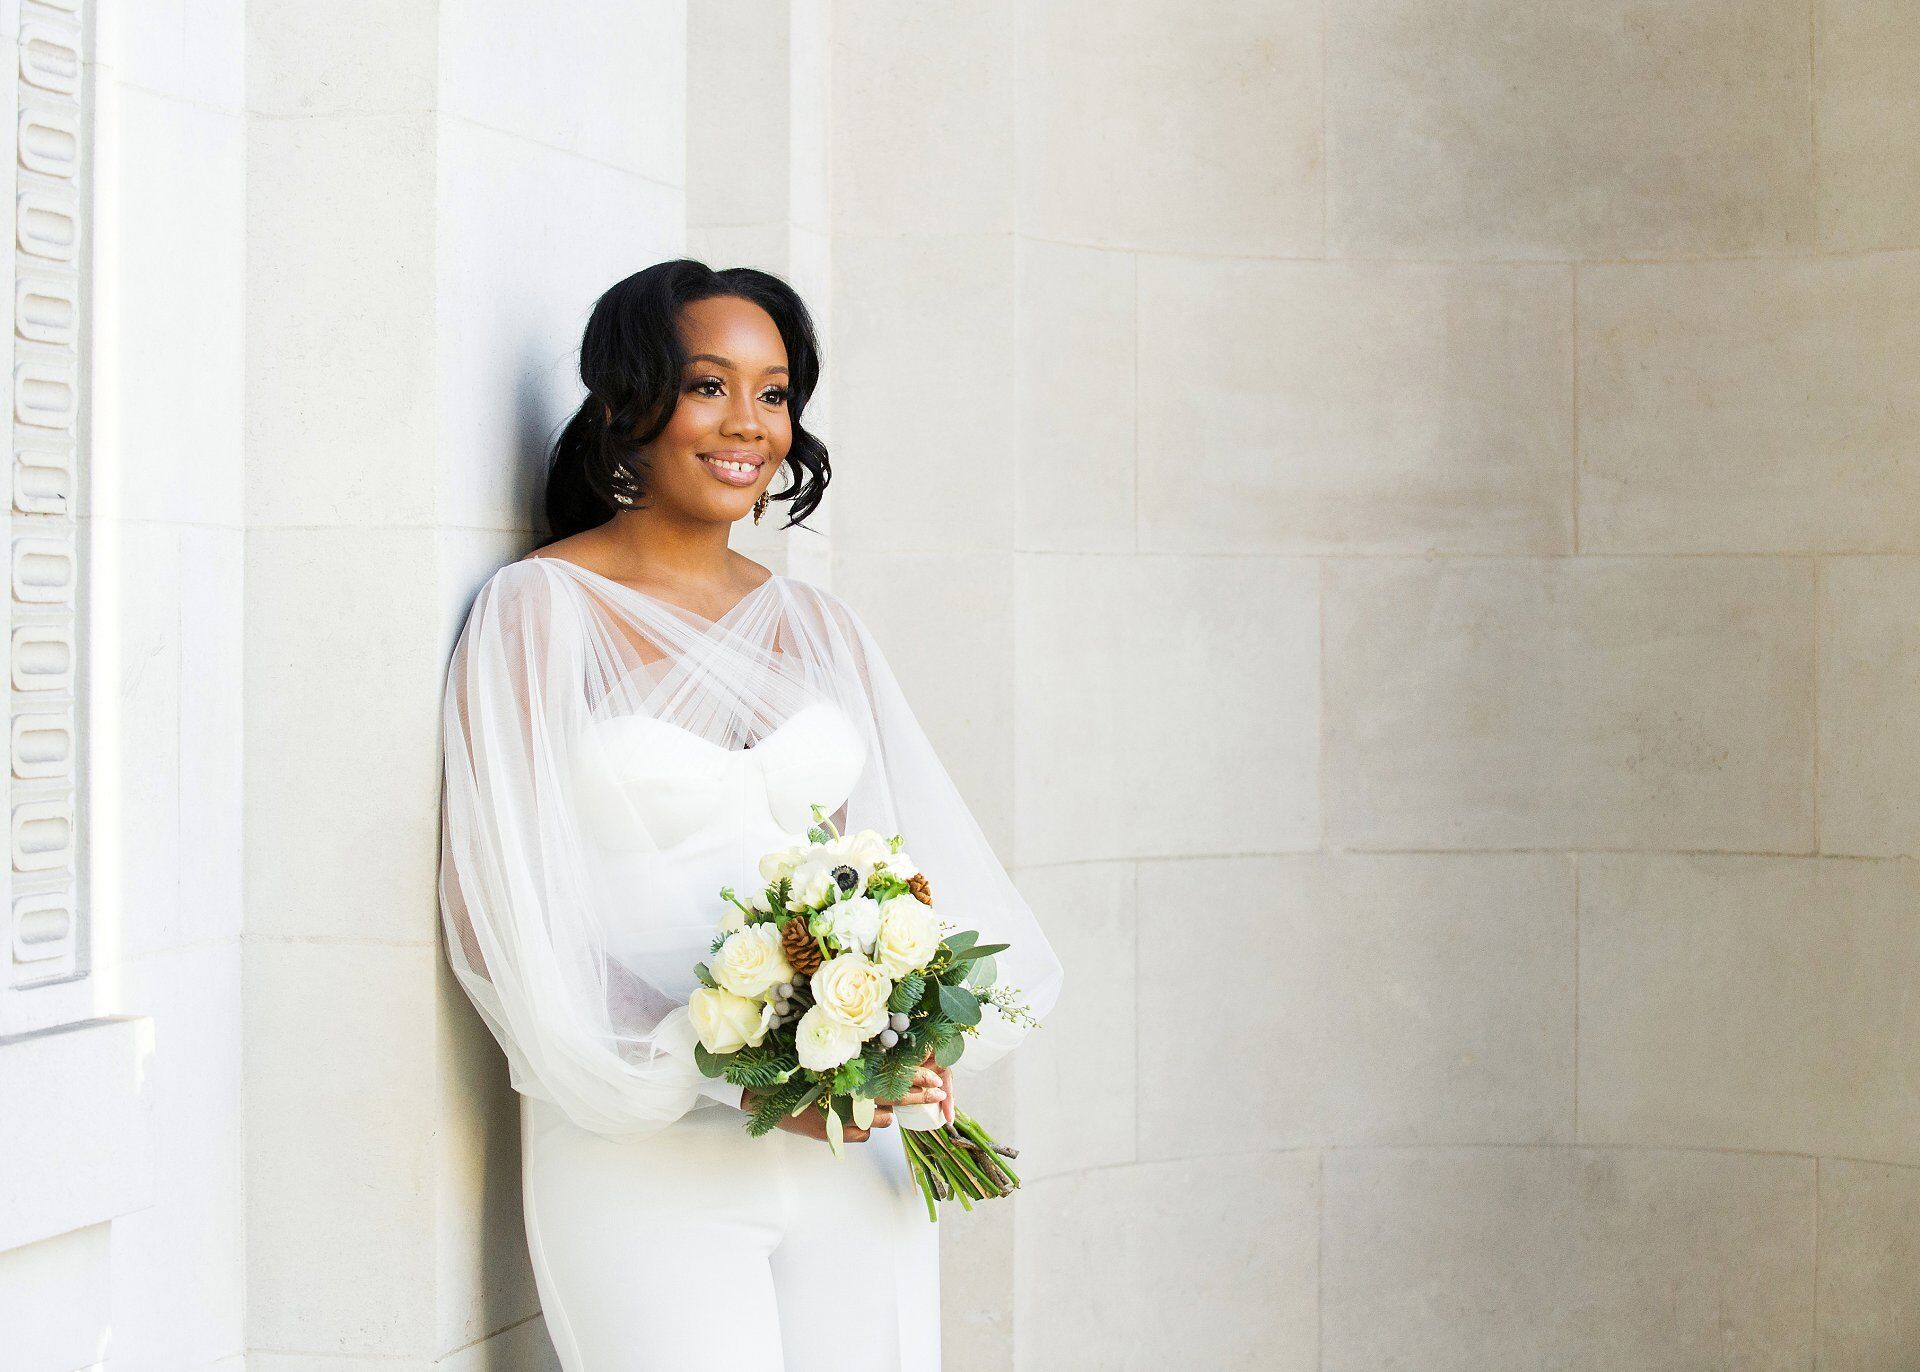 old marylebone town hall wedding photography nigerian bride in white jumsuit under the portico at westminster council house